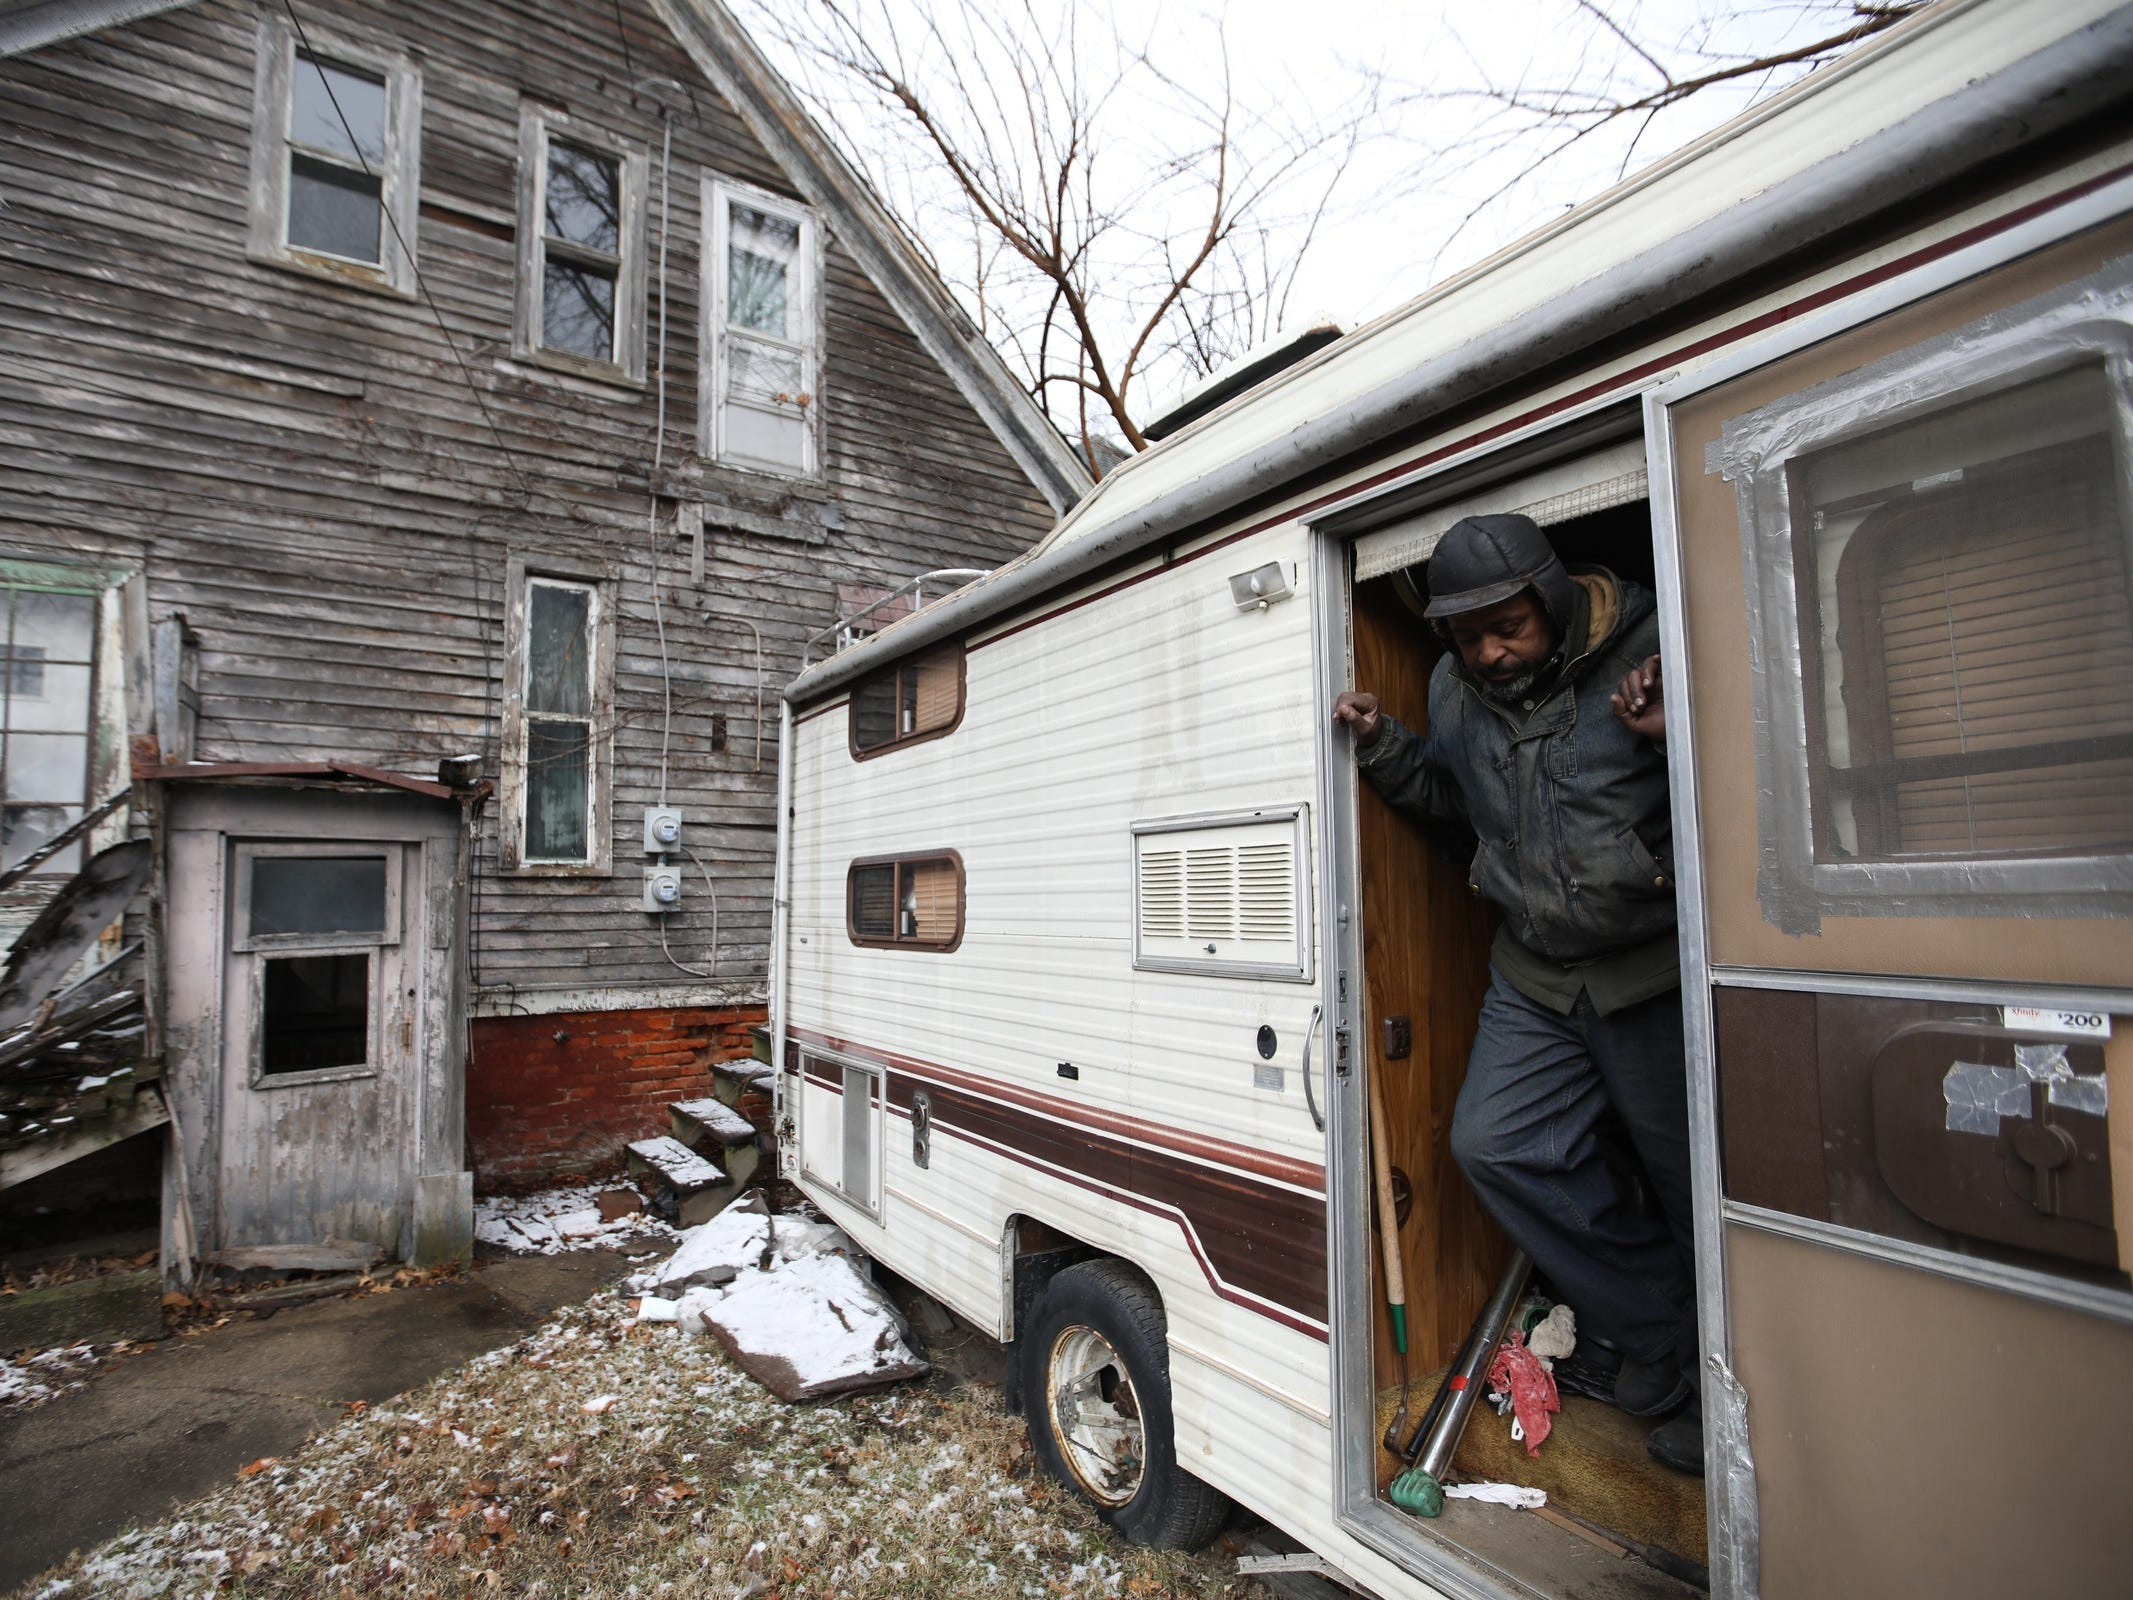 Stanley Thompson, 70, of Detroit has been living in a RV in his backyard since 2012, after the leak in the roof of his family home made it unlivable. Thompson, with the help of United Community Housing Coalition, was able to find a market-rate apartment in downtown Detroit, after Thompson lost his home due to back property taxes.